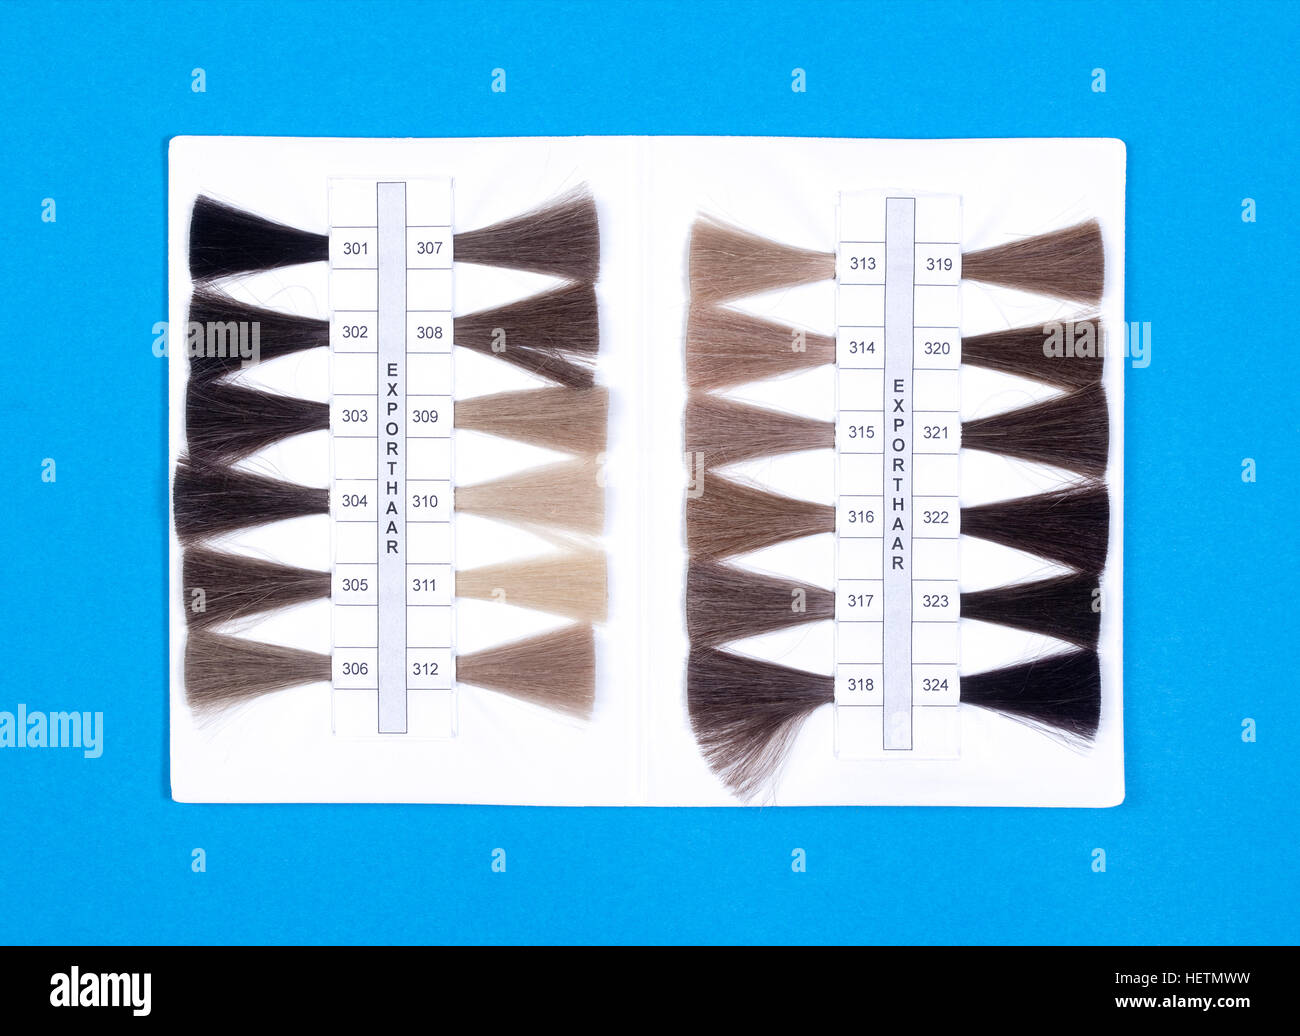 Wig Production Industry - Hair Samples For Sale - Stock Image